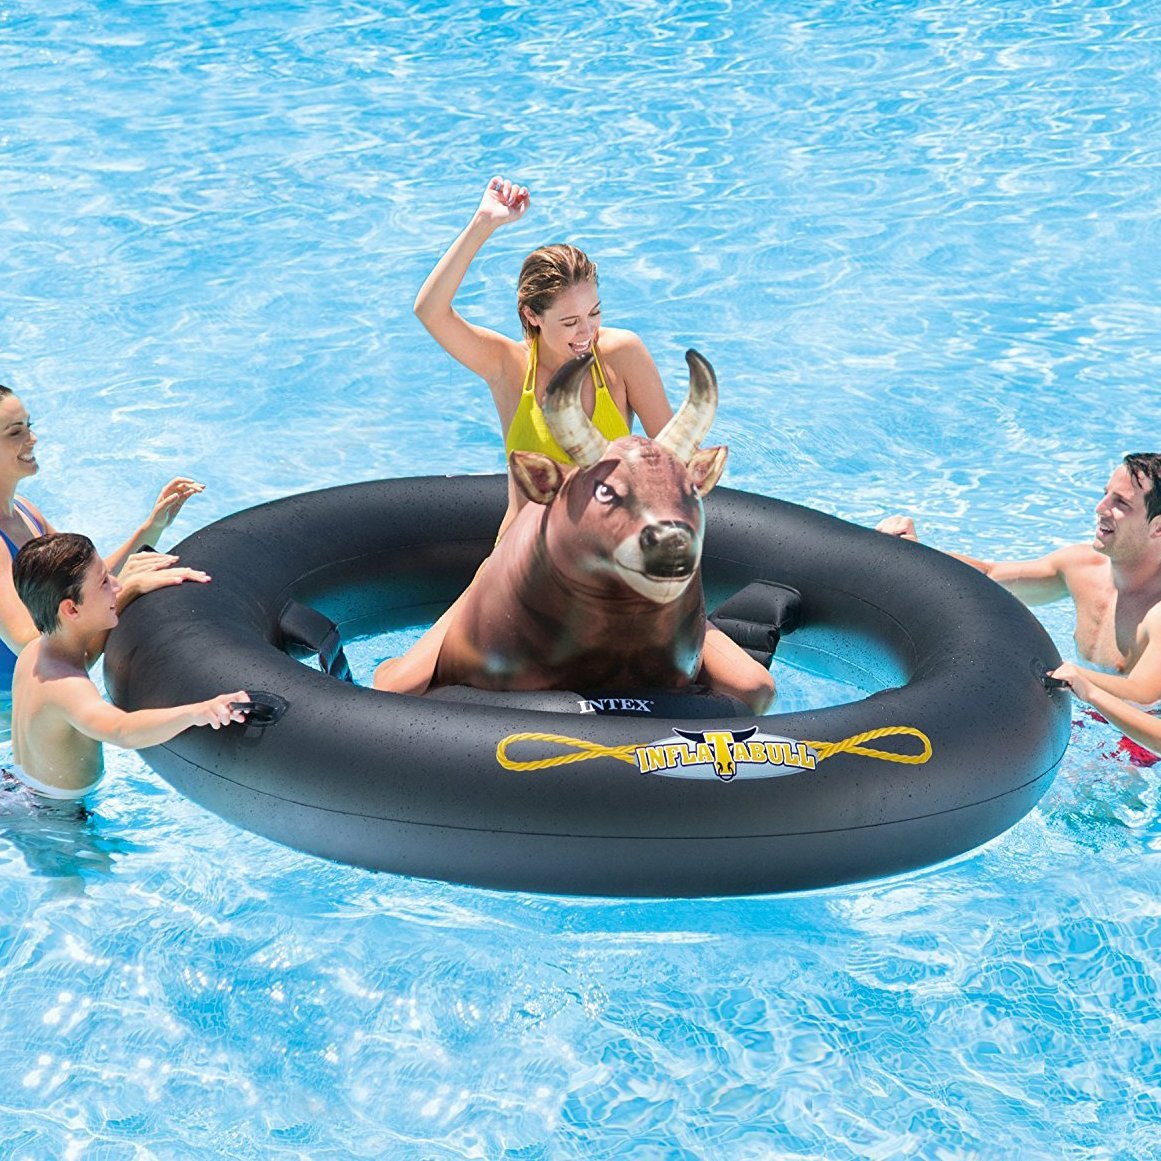 Inflat-A-Bull Pool Toy